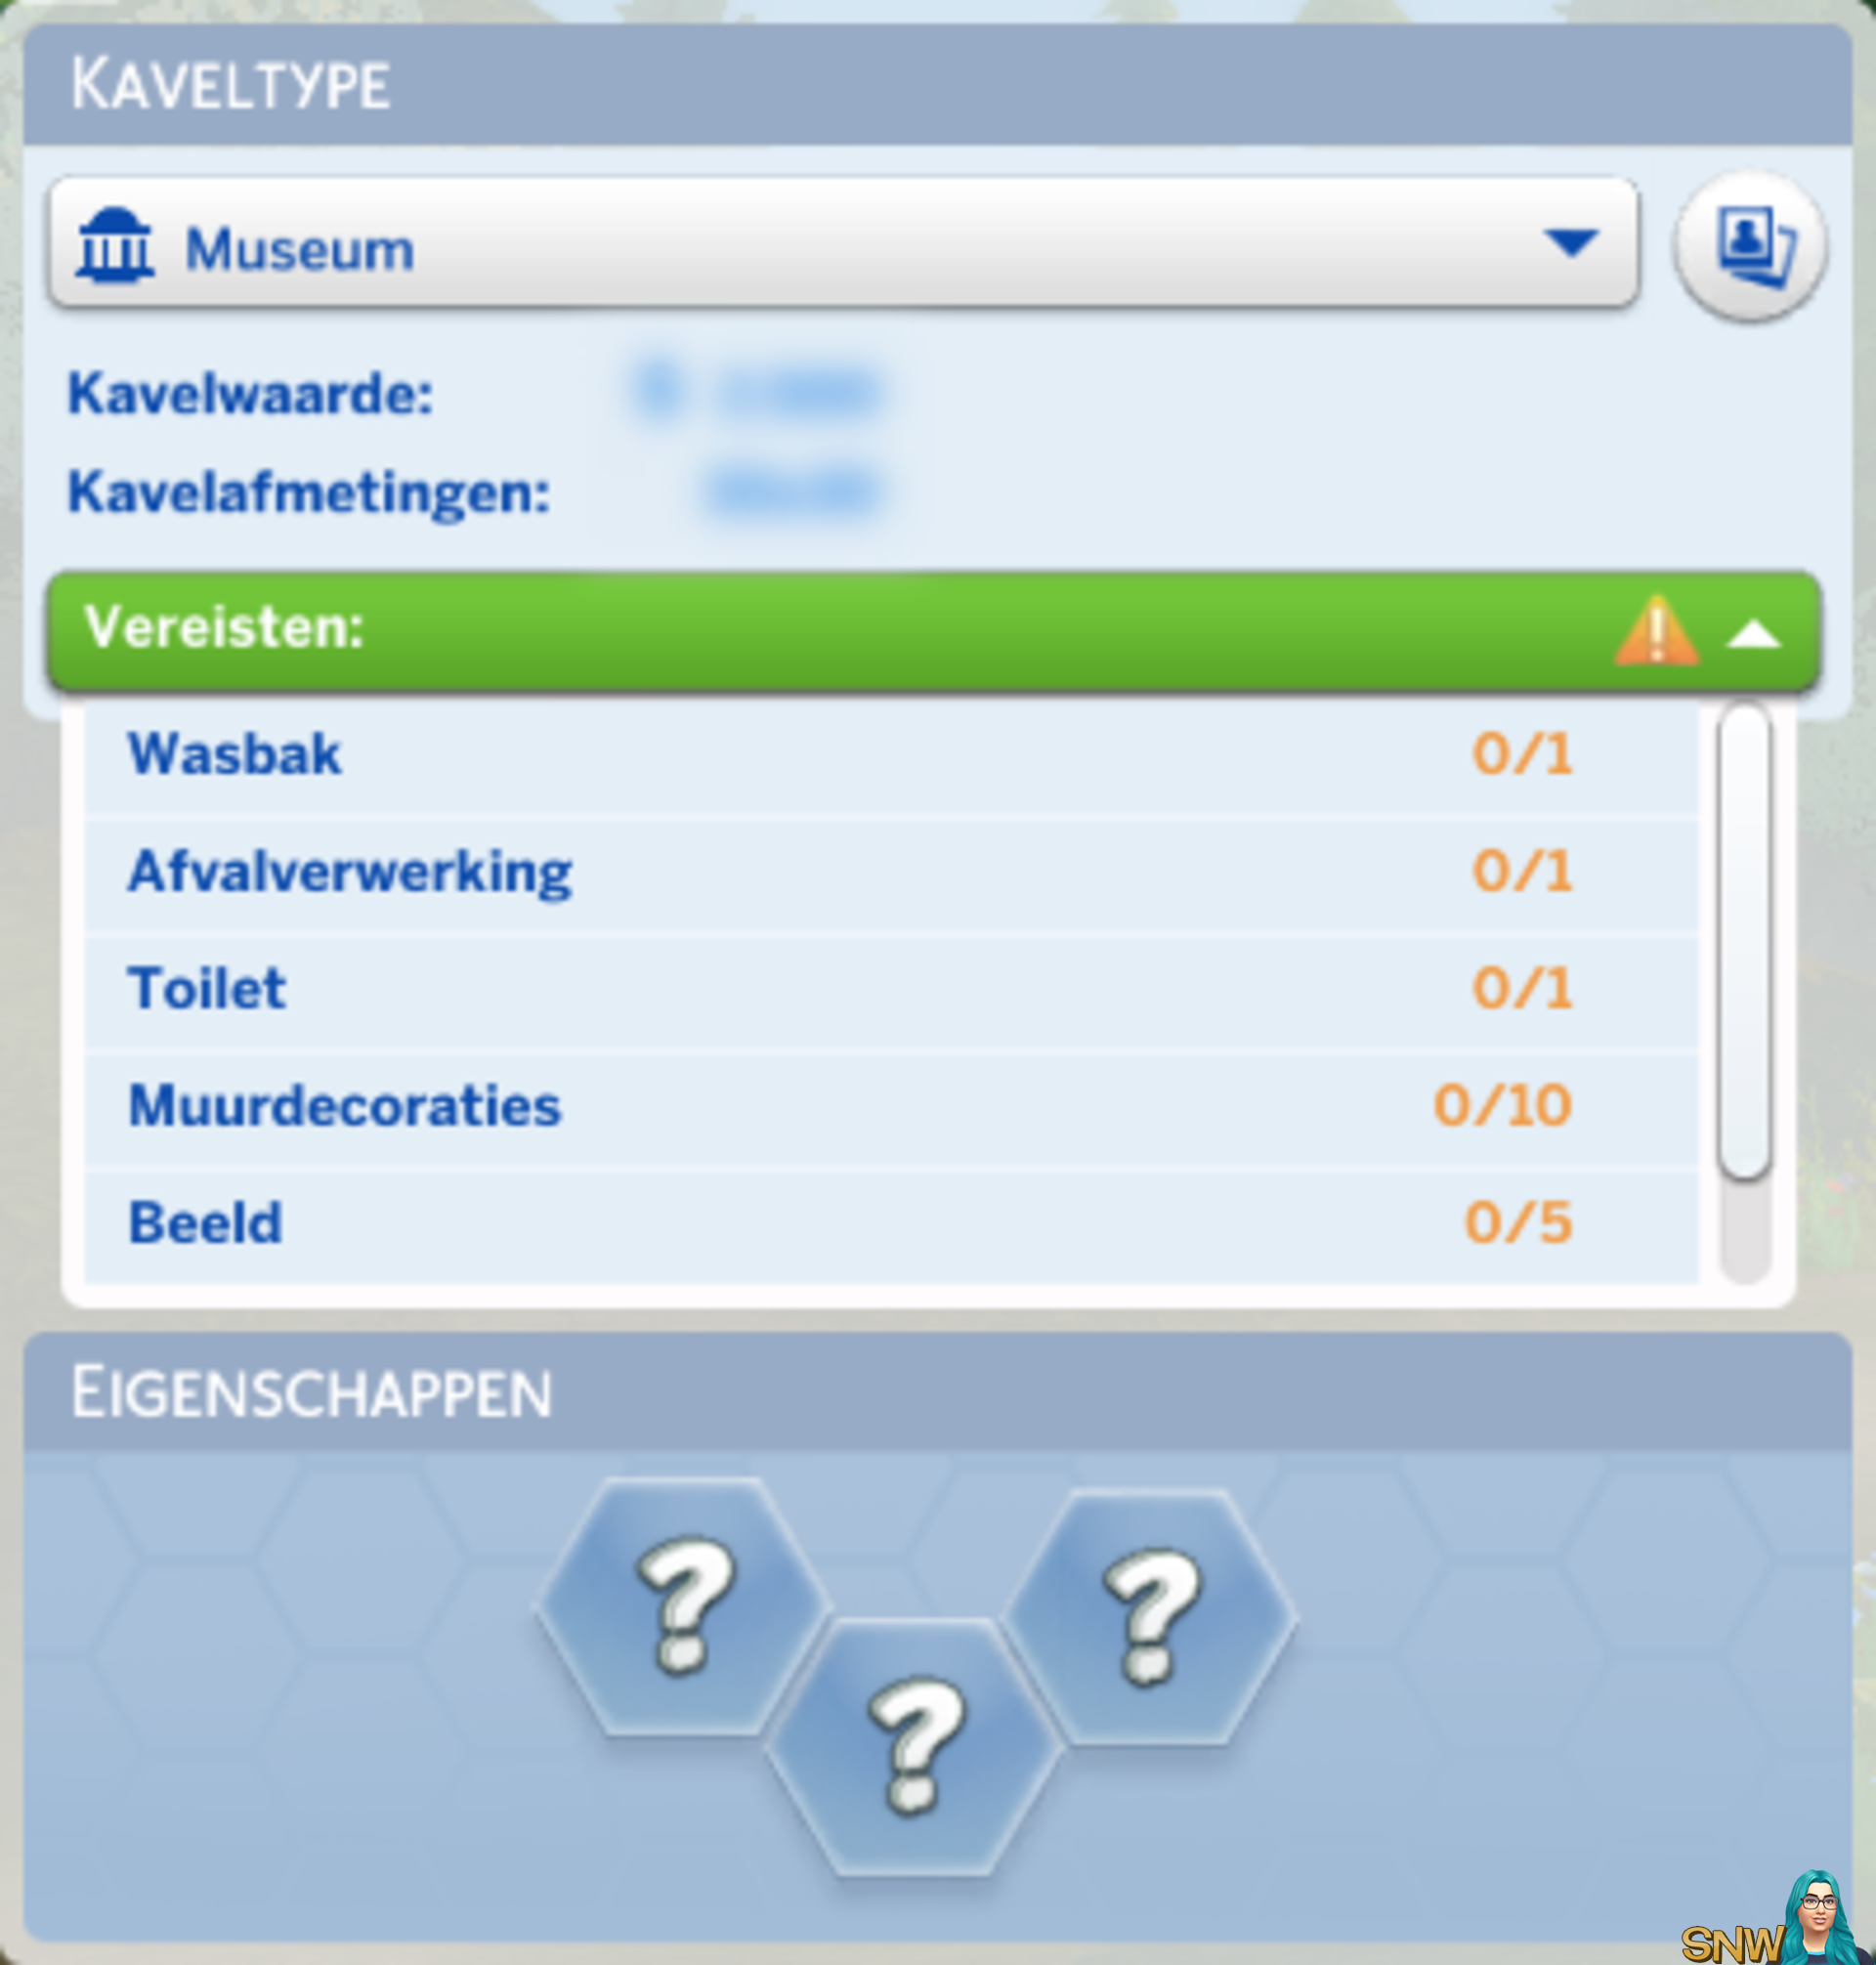 De Sims 4 kaveltype Museum